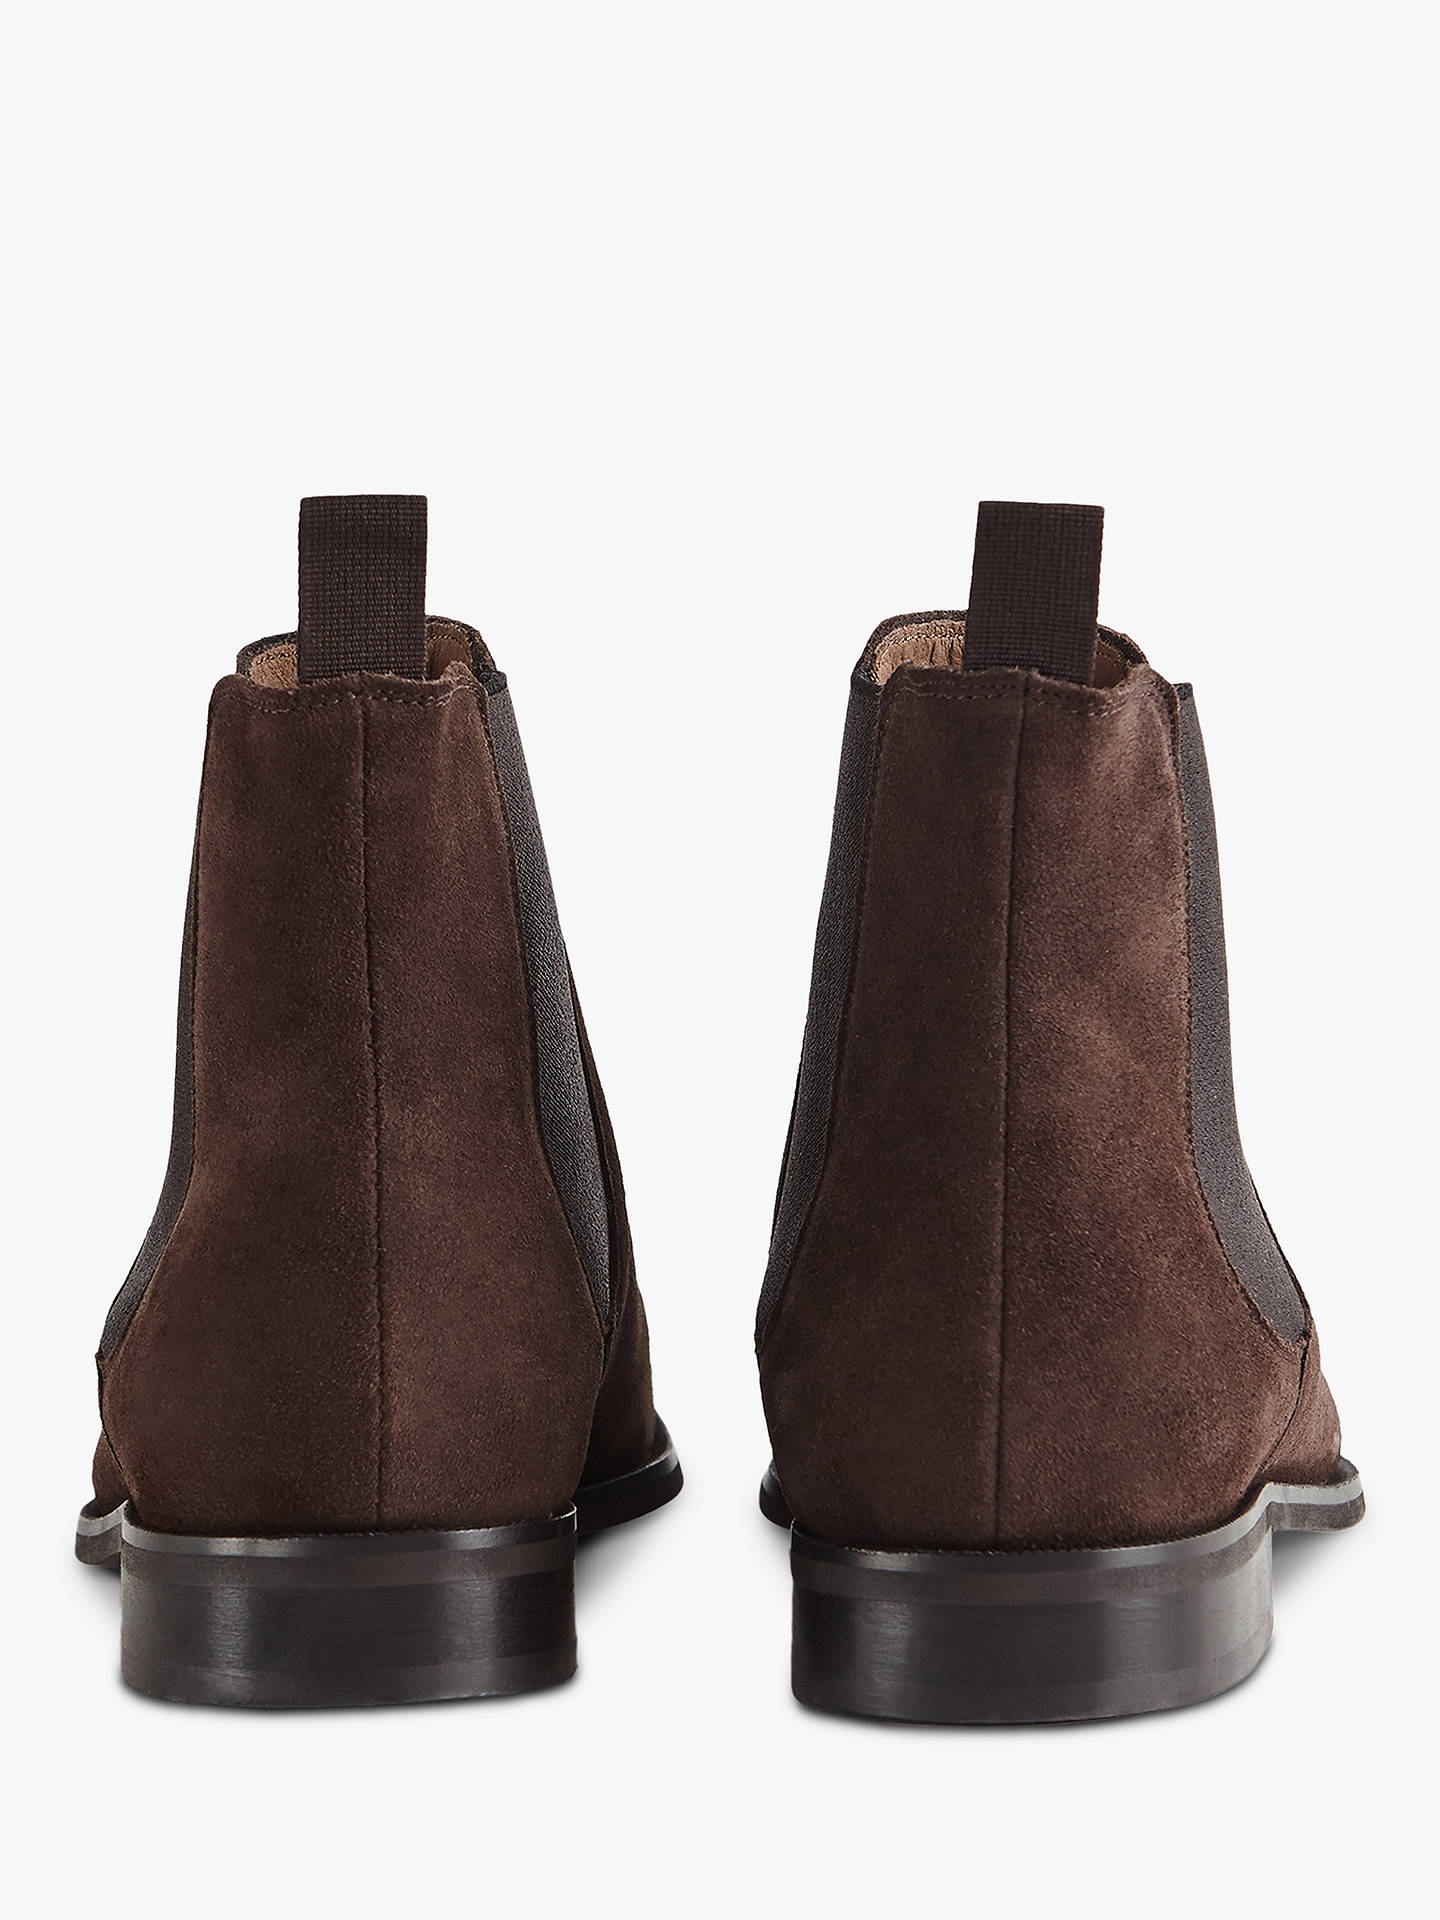 BuyReiss Triton Suede Chelsea Boots, Dark Brown, 7 Online at johnlewis.com